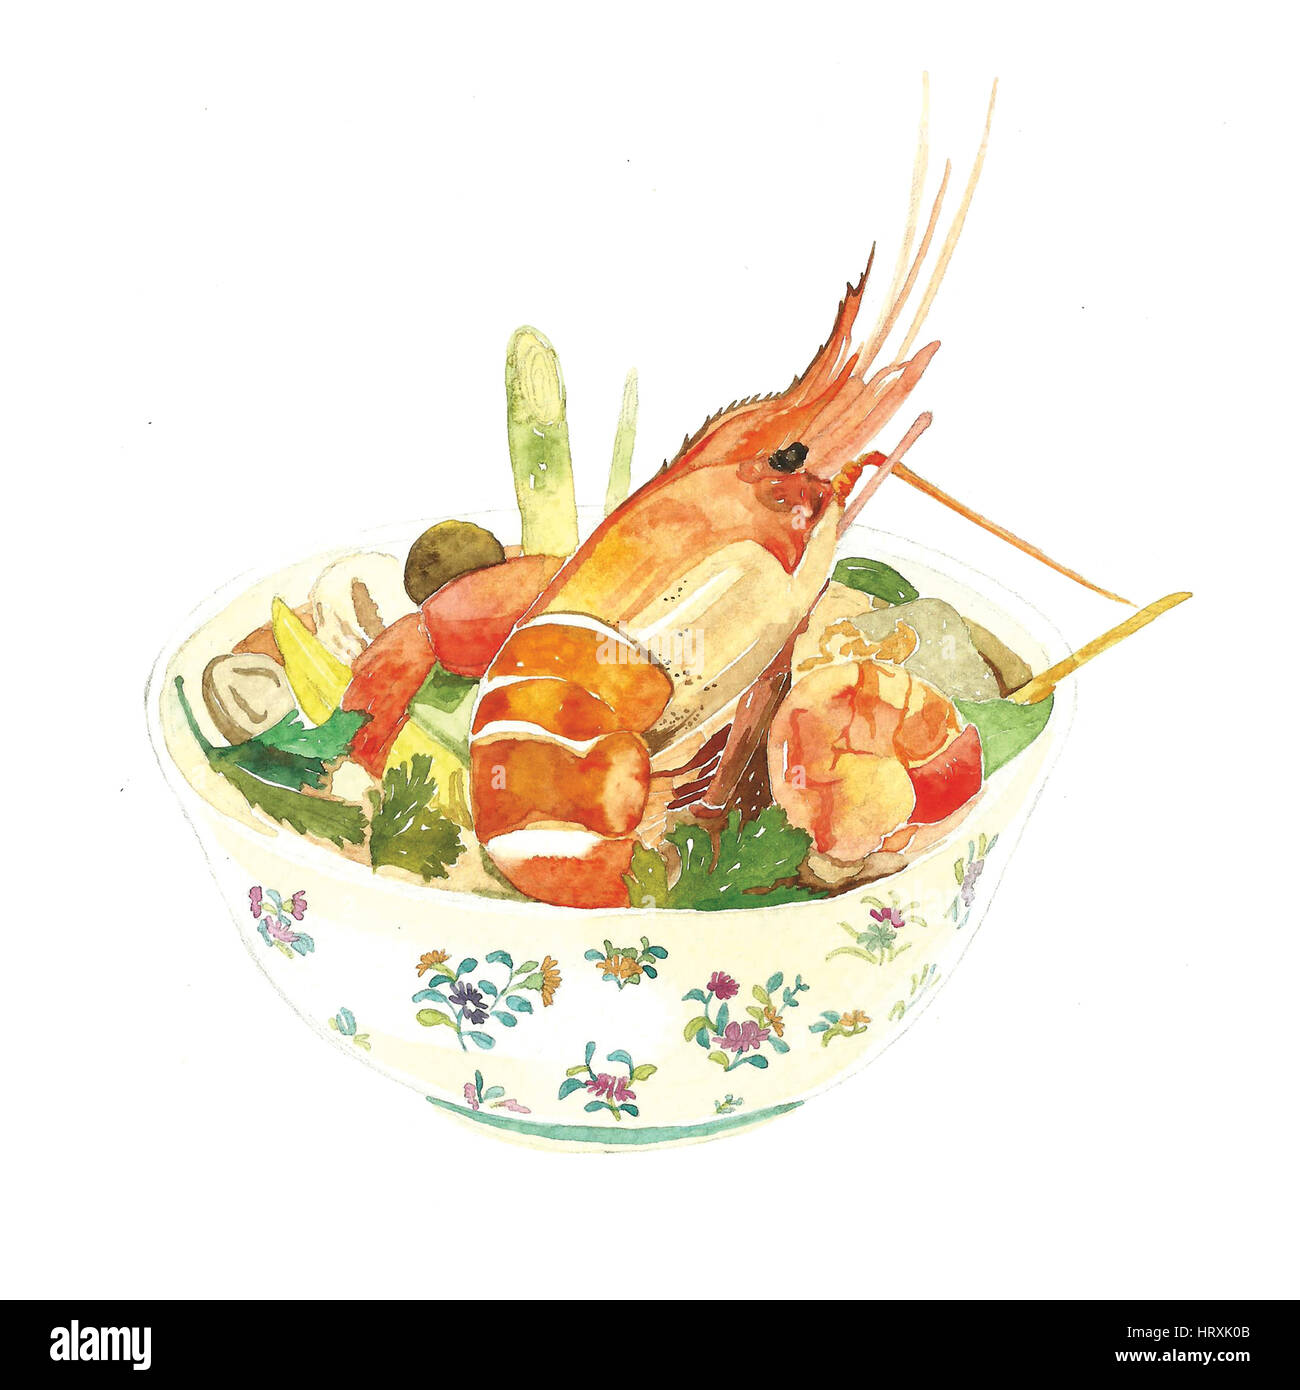 Blogspot Food Blog Sour Prawn Soup Thai Food Very Famous Thai Cuisine